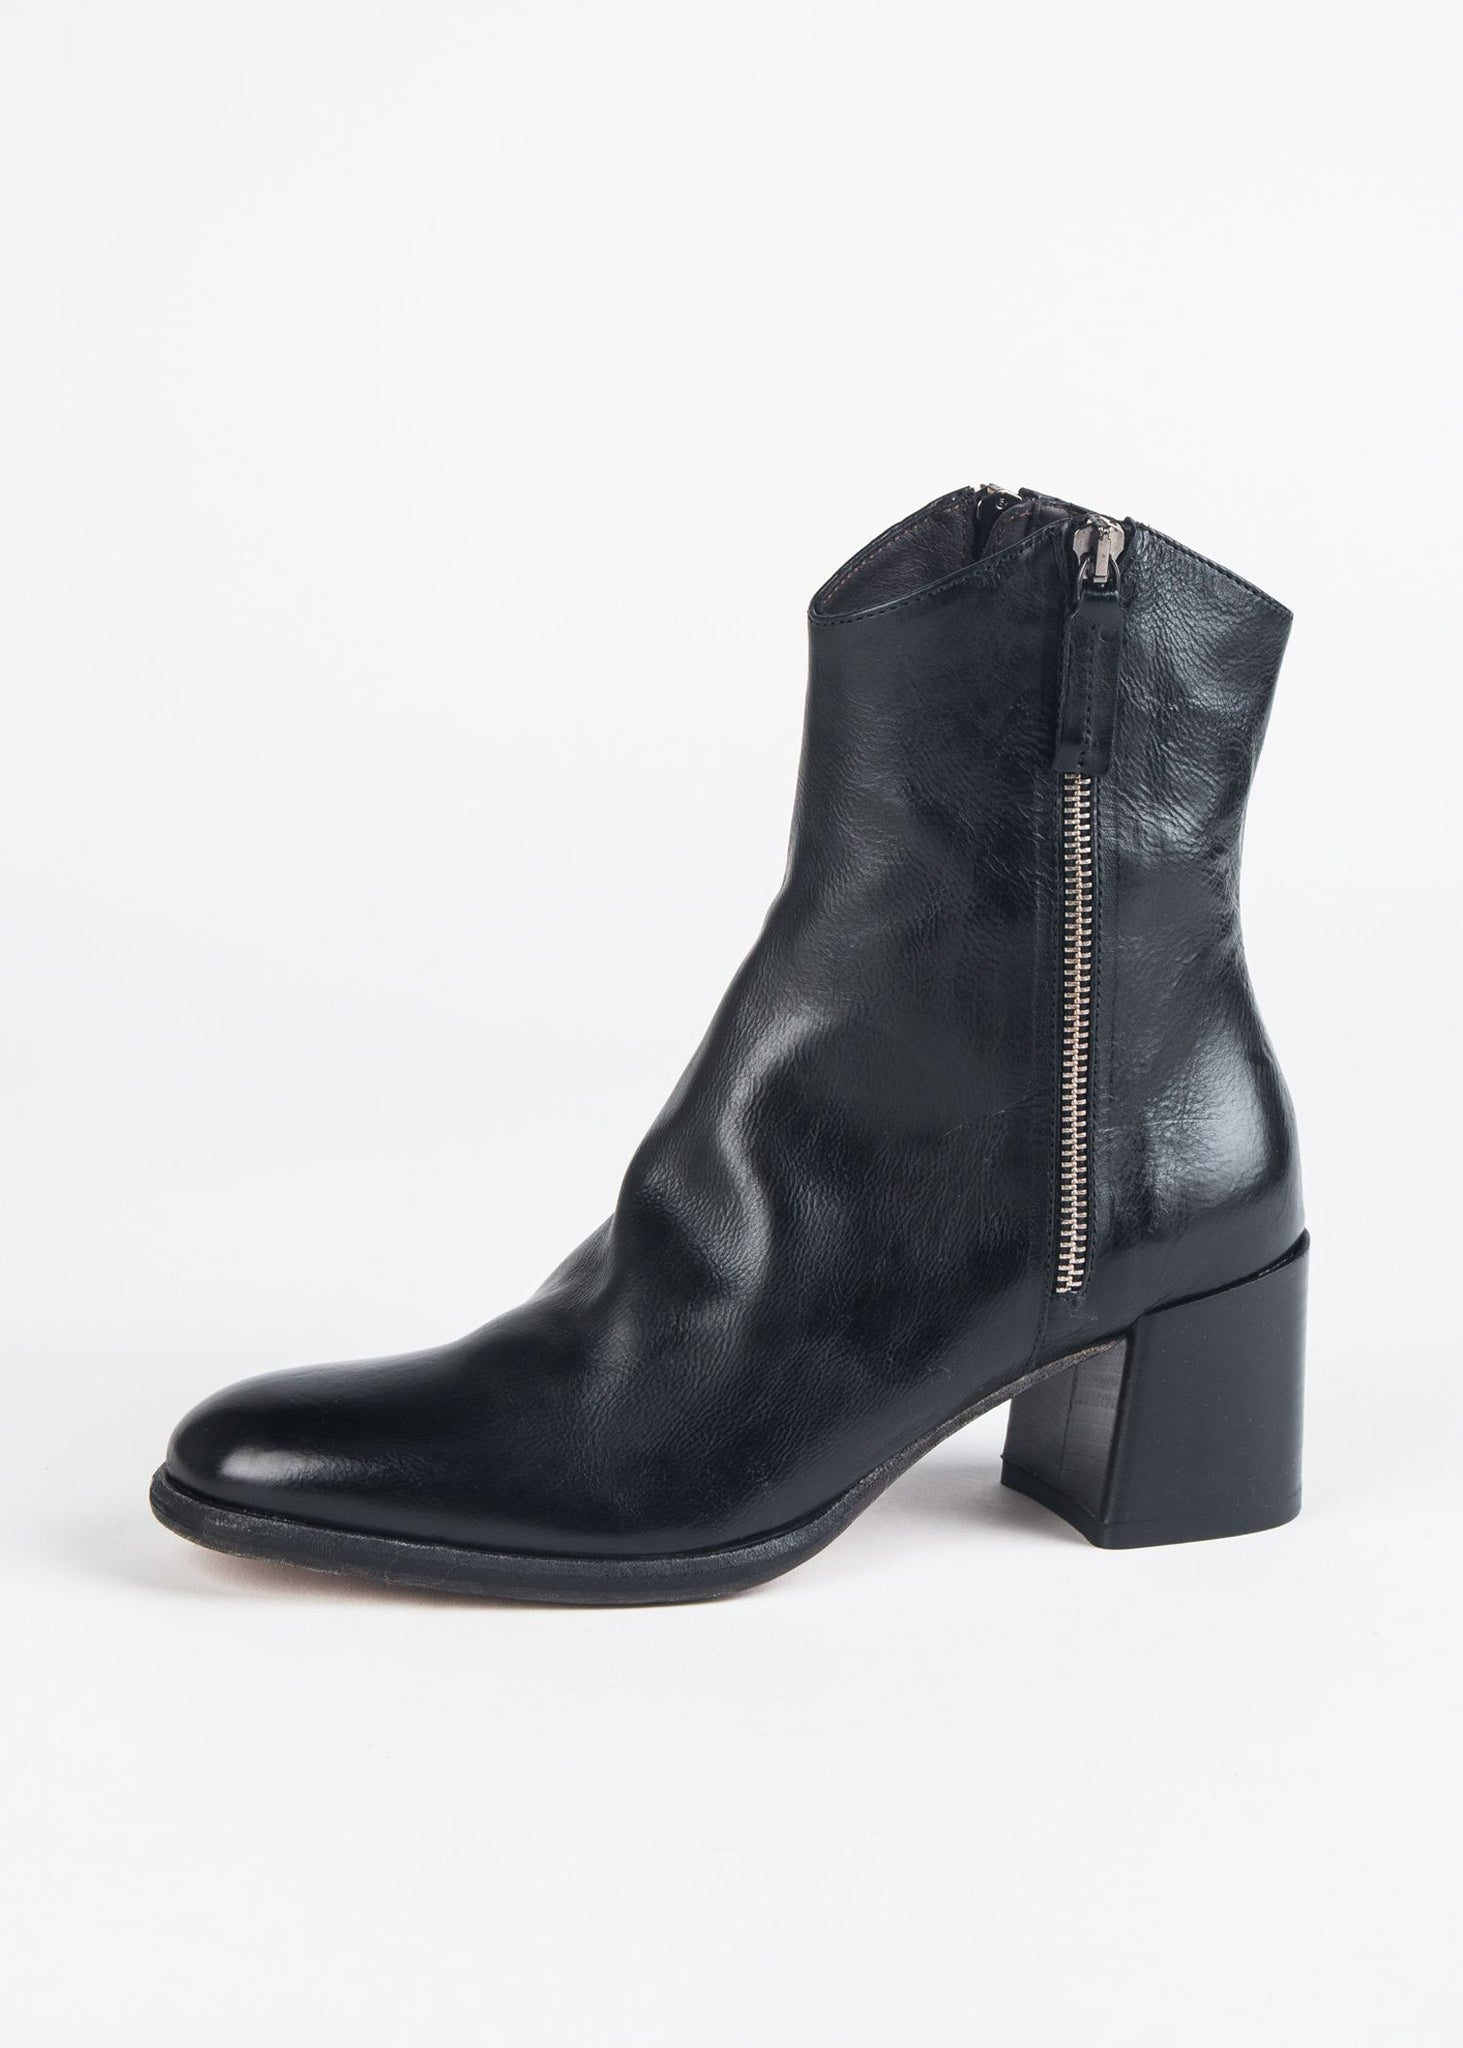 DUAL ZIPPER LEATHER BOOT